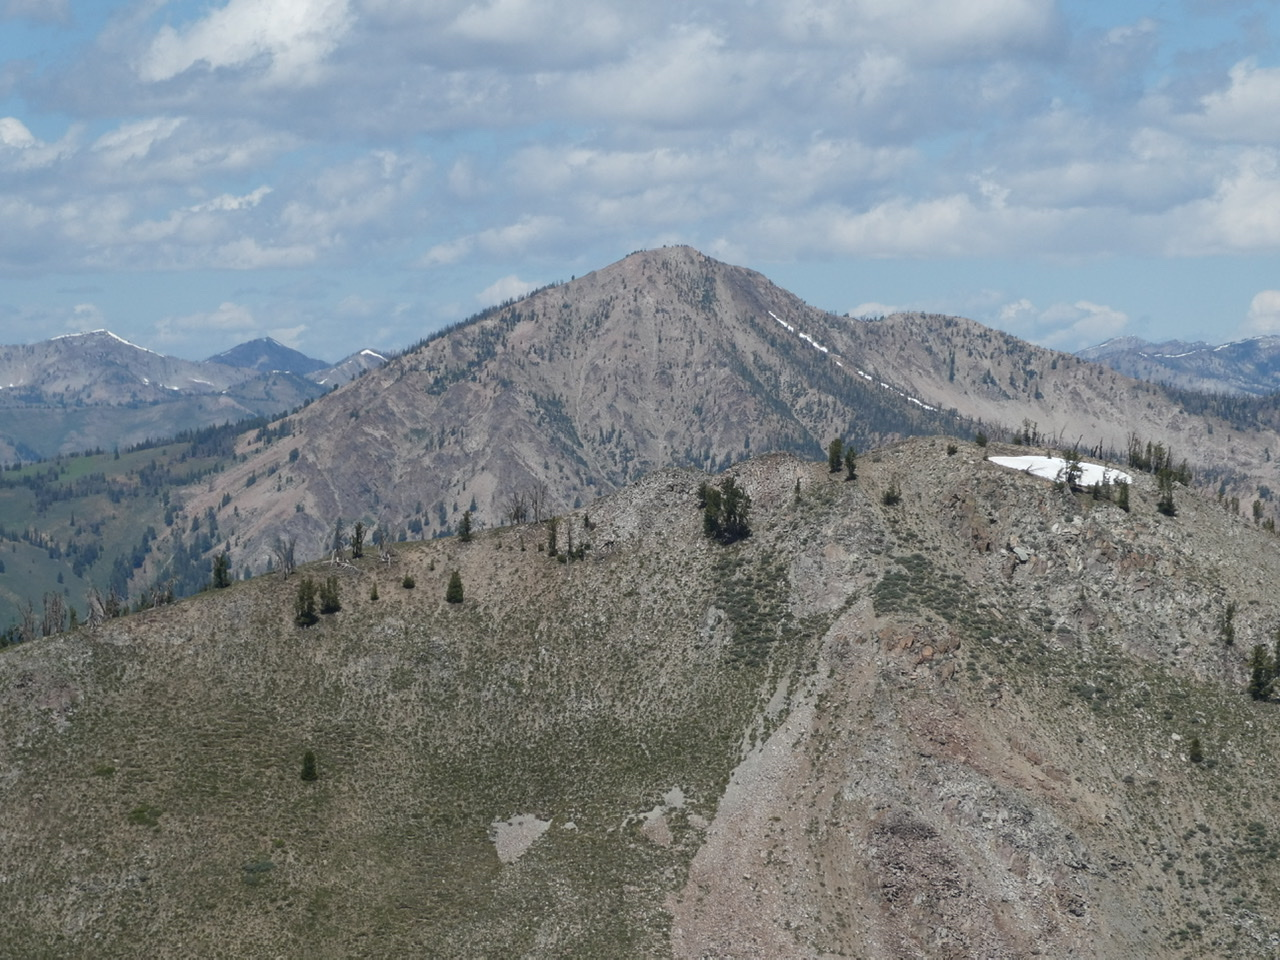 Big Peak viewed from Shaw Mountain.